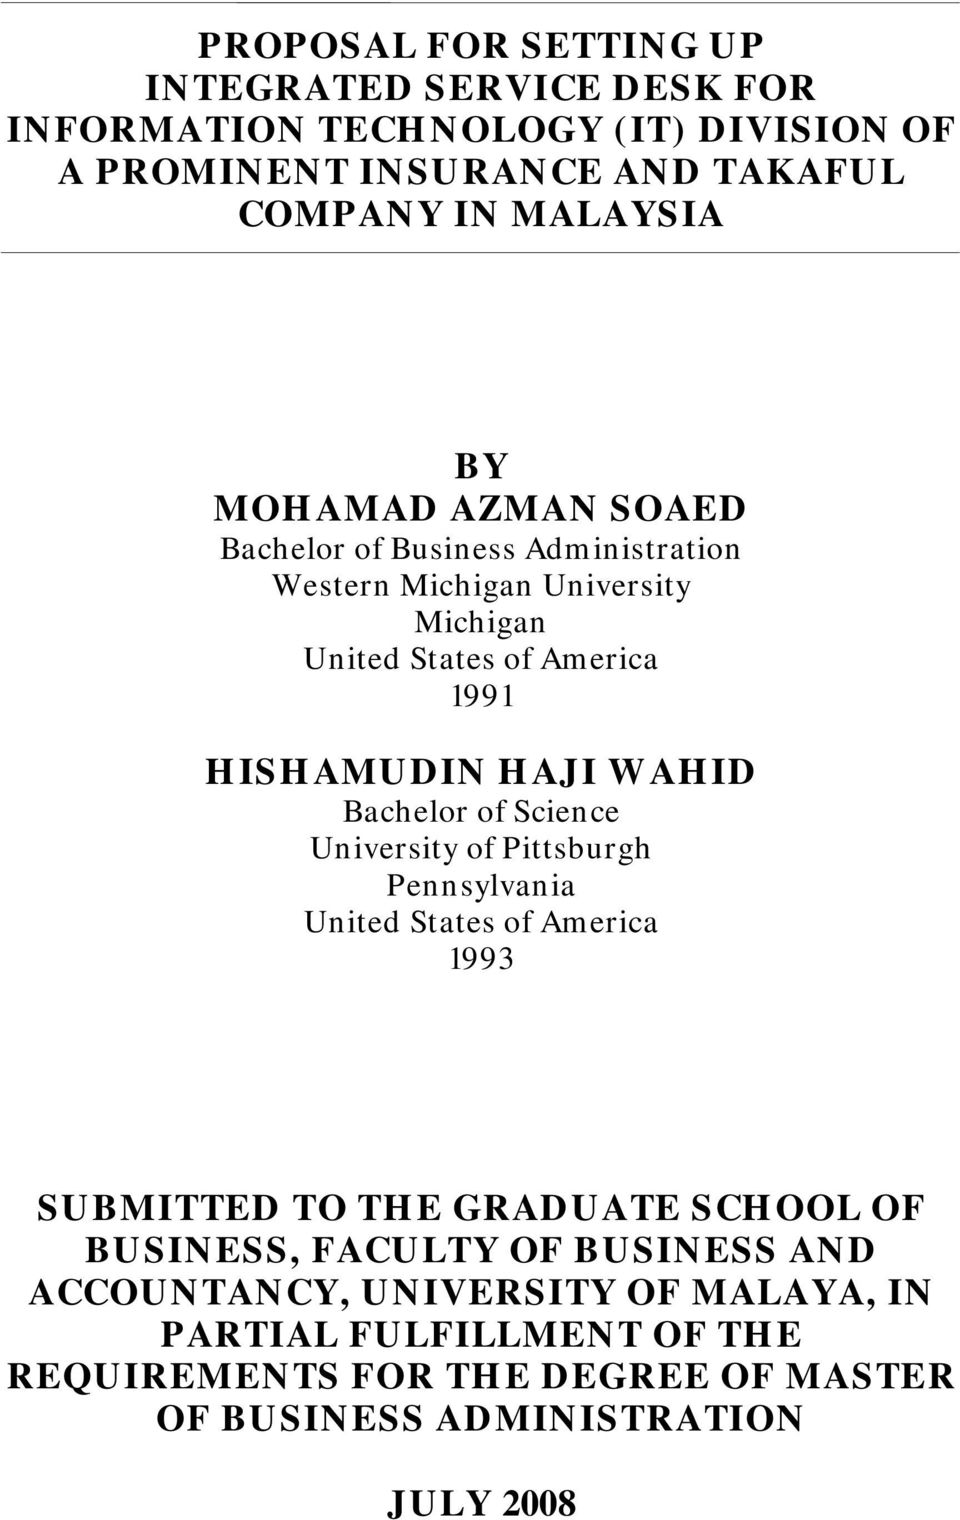 Bachelor of Science University of Pittsburgh Pennsylvania United States of America 1993 SUBMITTED TO THE GRADUATE SCHOOL OF BUSINESS, FACULTY OF